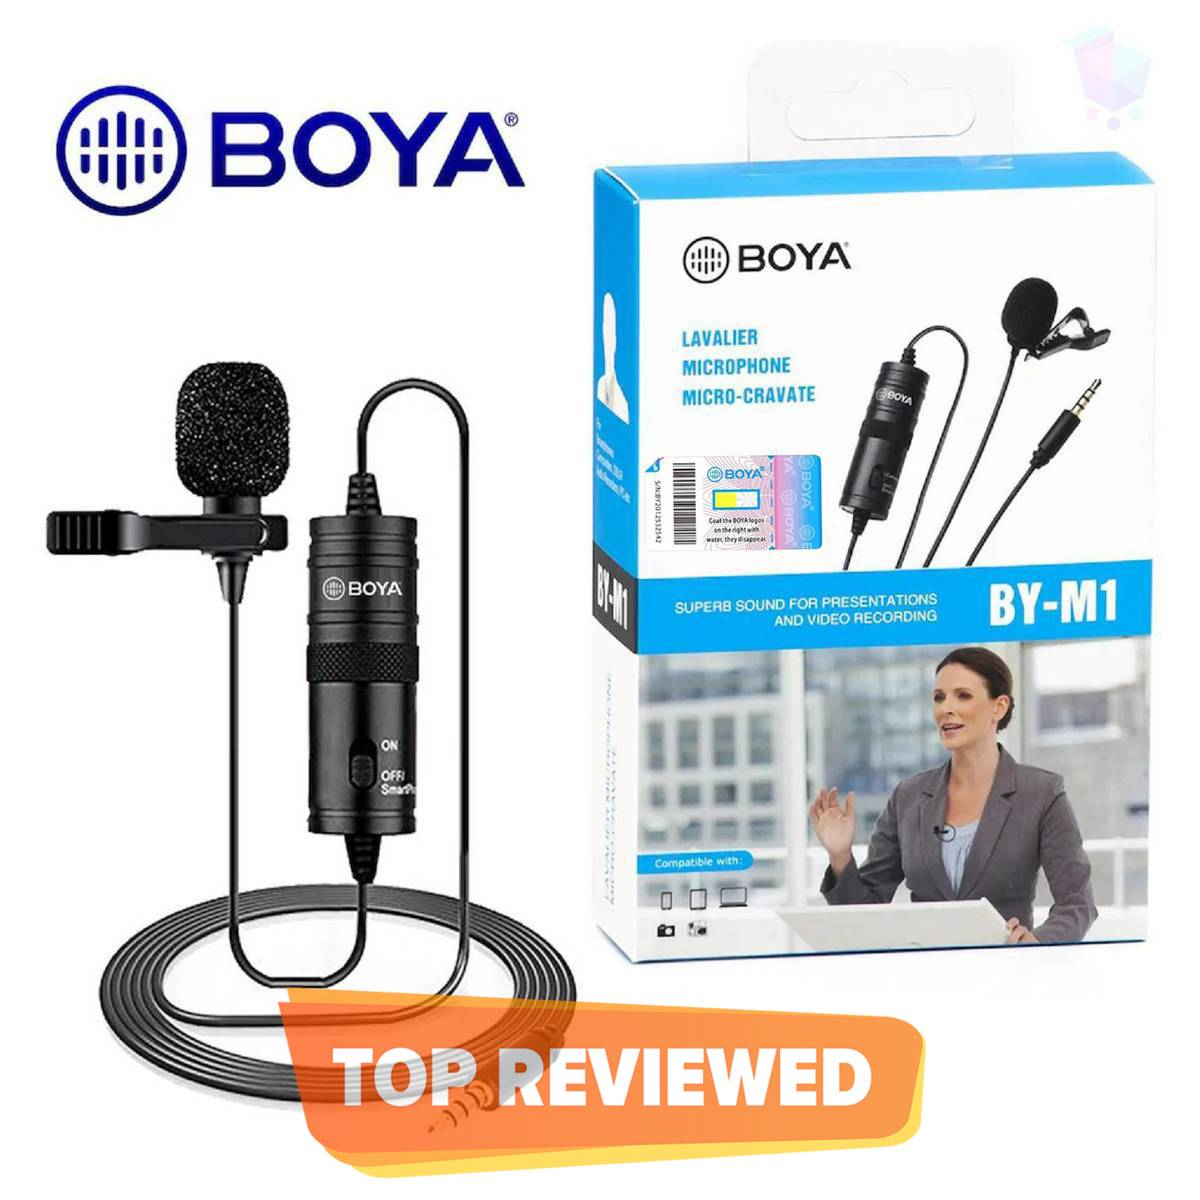 Latest Mic Boya M1 Original Lavalier Collar Microphone for ALL Devices Mobile Camera DSLR Laptop Computer